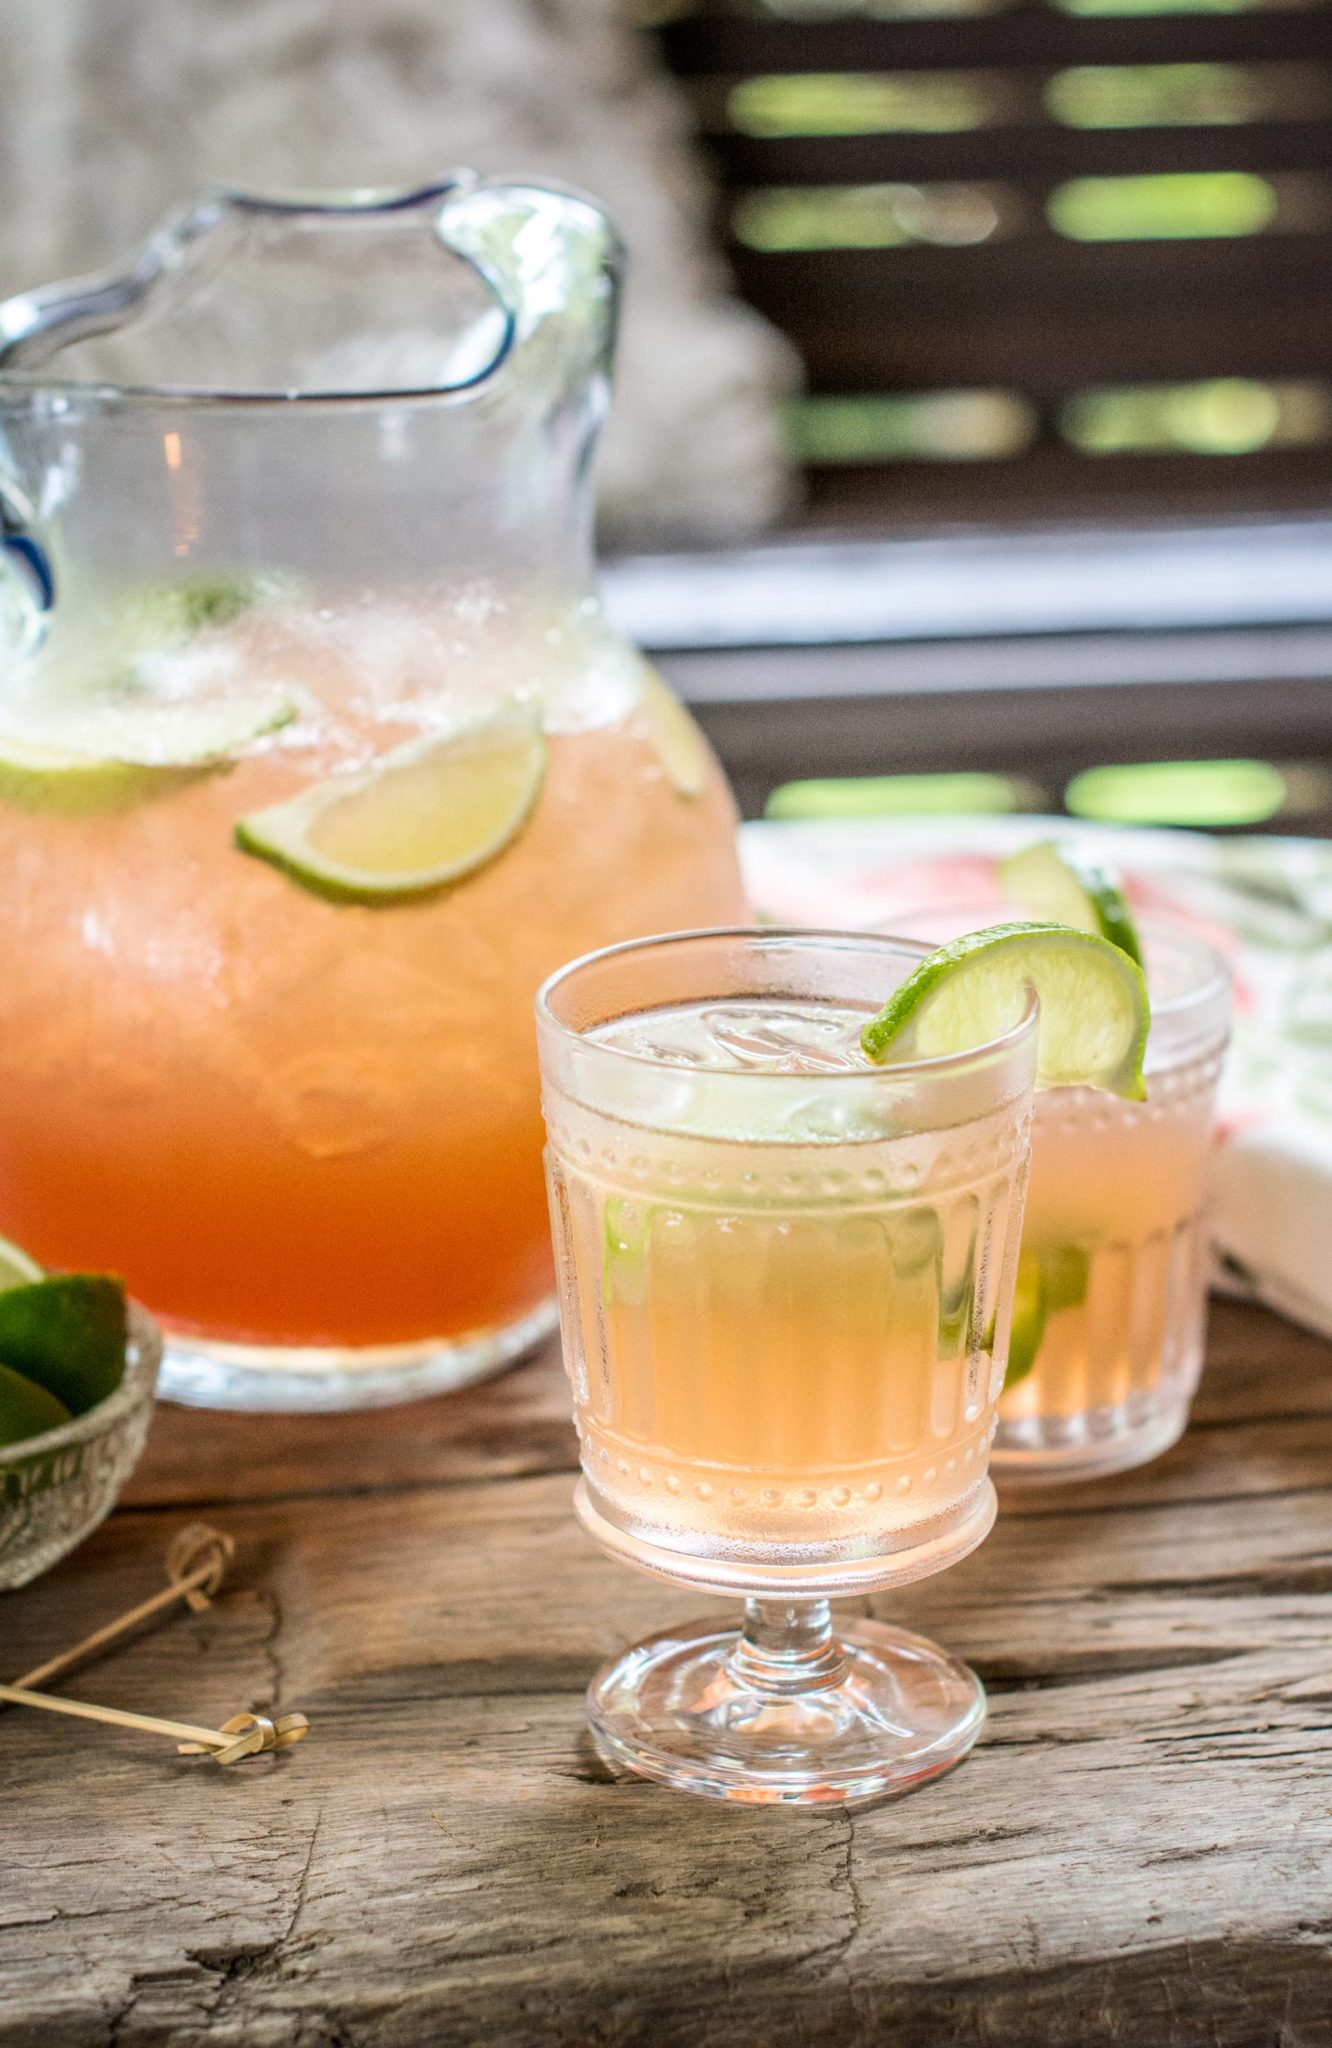 Clear glasses and pitcher filled with Scarlet O'Hara Cocktail punch and garnished with lime wedges